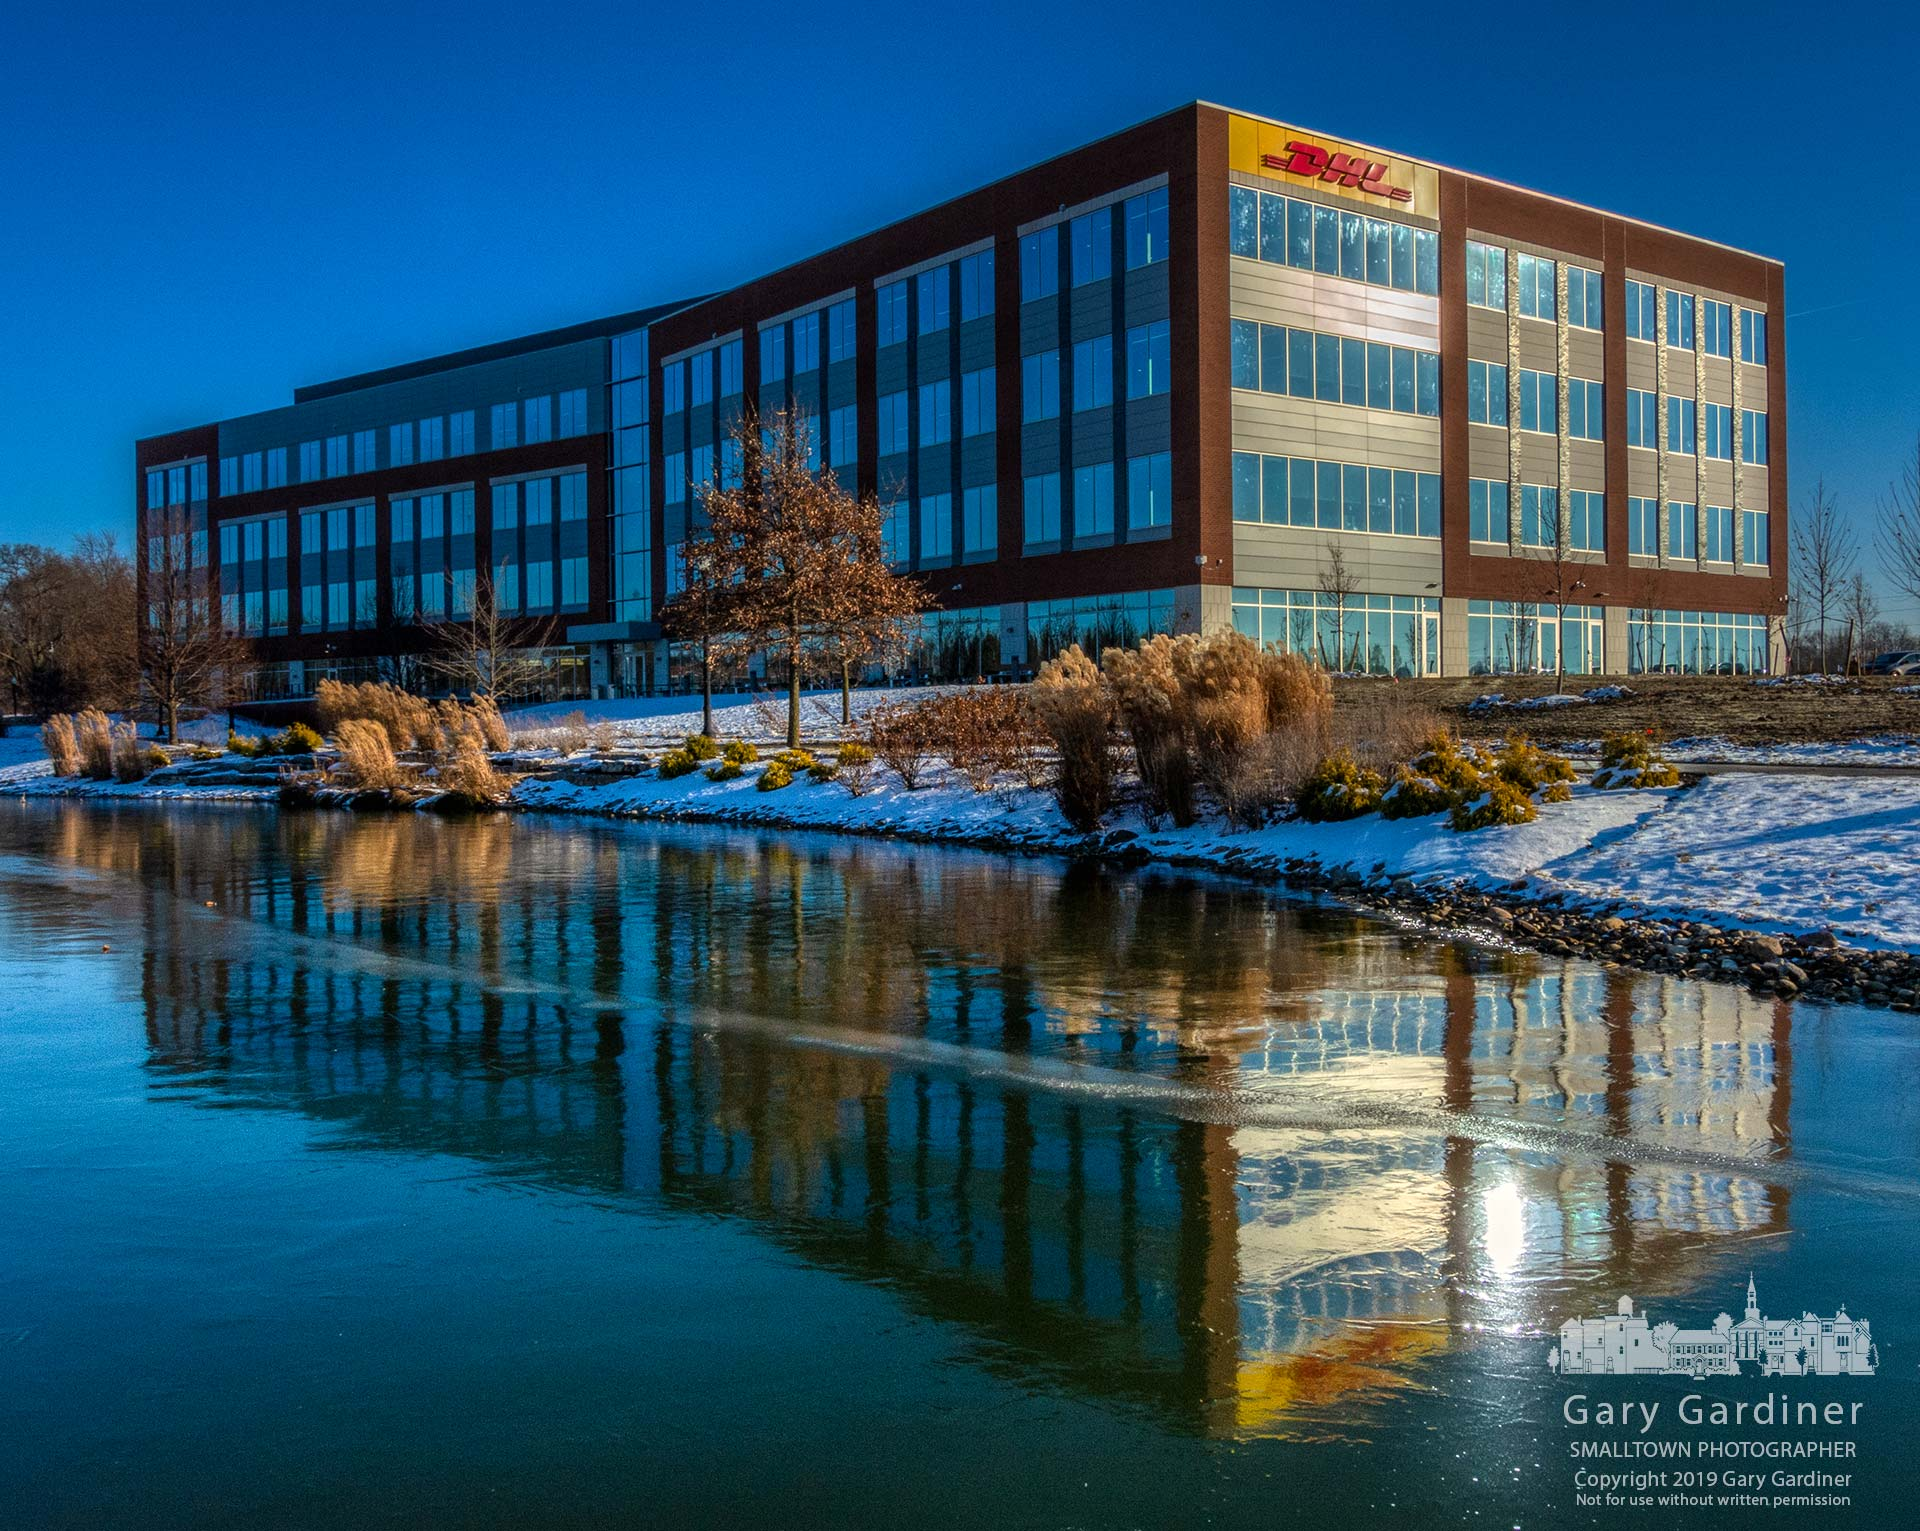 The recently completed DHL Supply Chain North and South America headquarters is reflected in the frozen surface of the pond between it and the Renaissance Hotel. My Final Photo for Dec. 19, 2019.